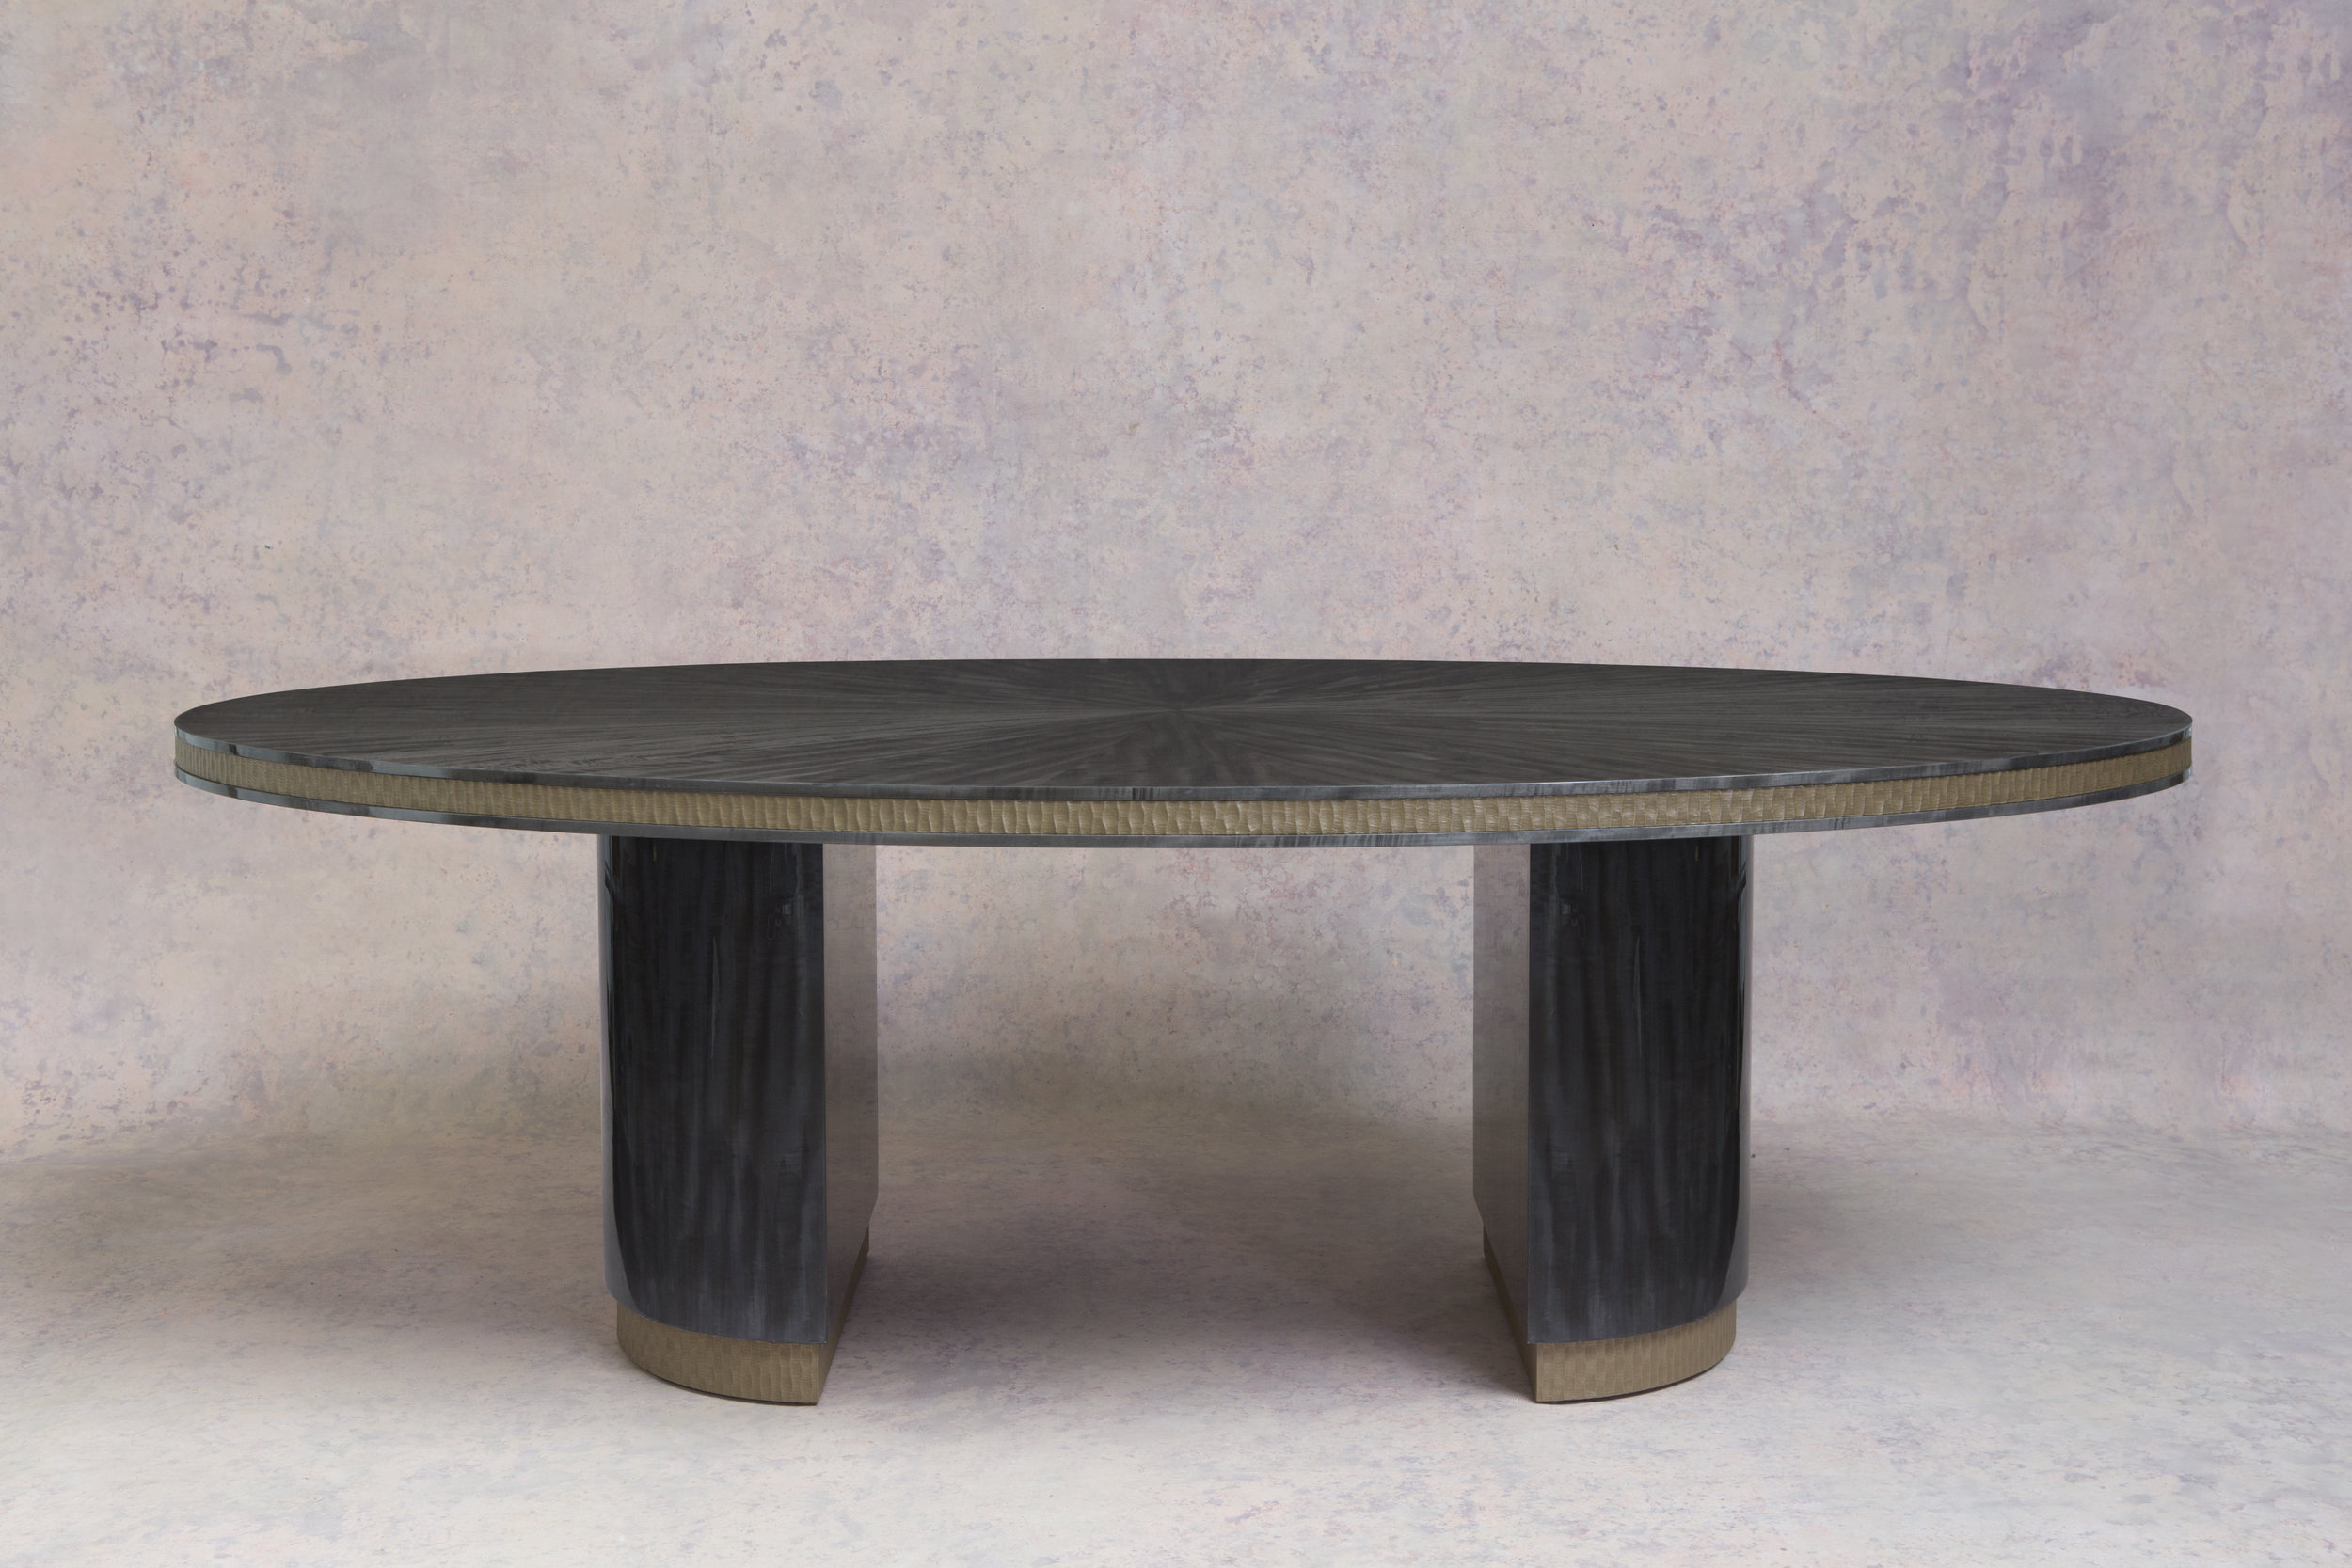 The Howes Table